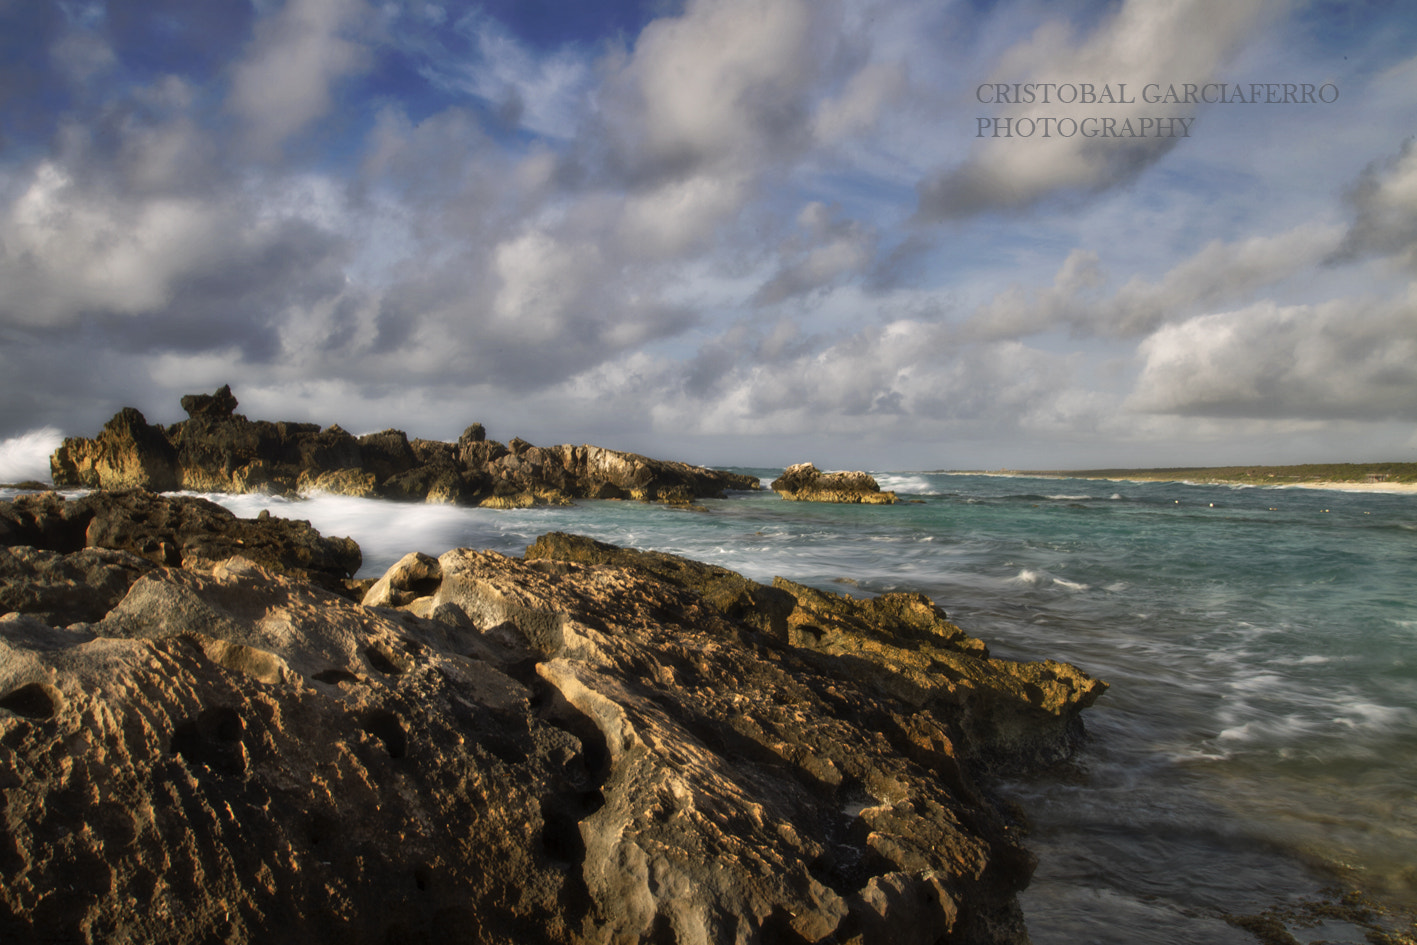 Photograph Rocks and waves by Cristobal Garciaferro Rubio on 500px